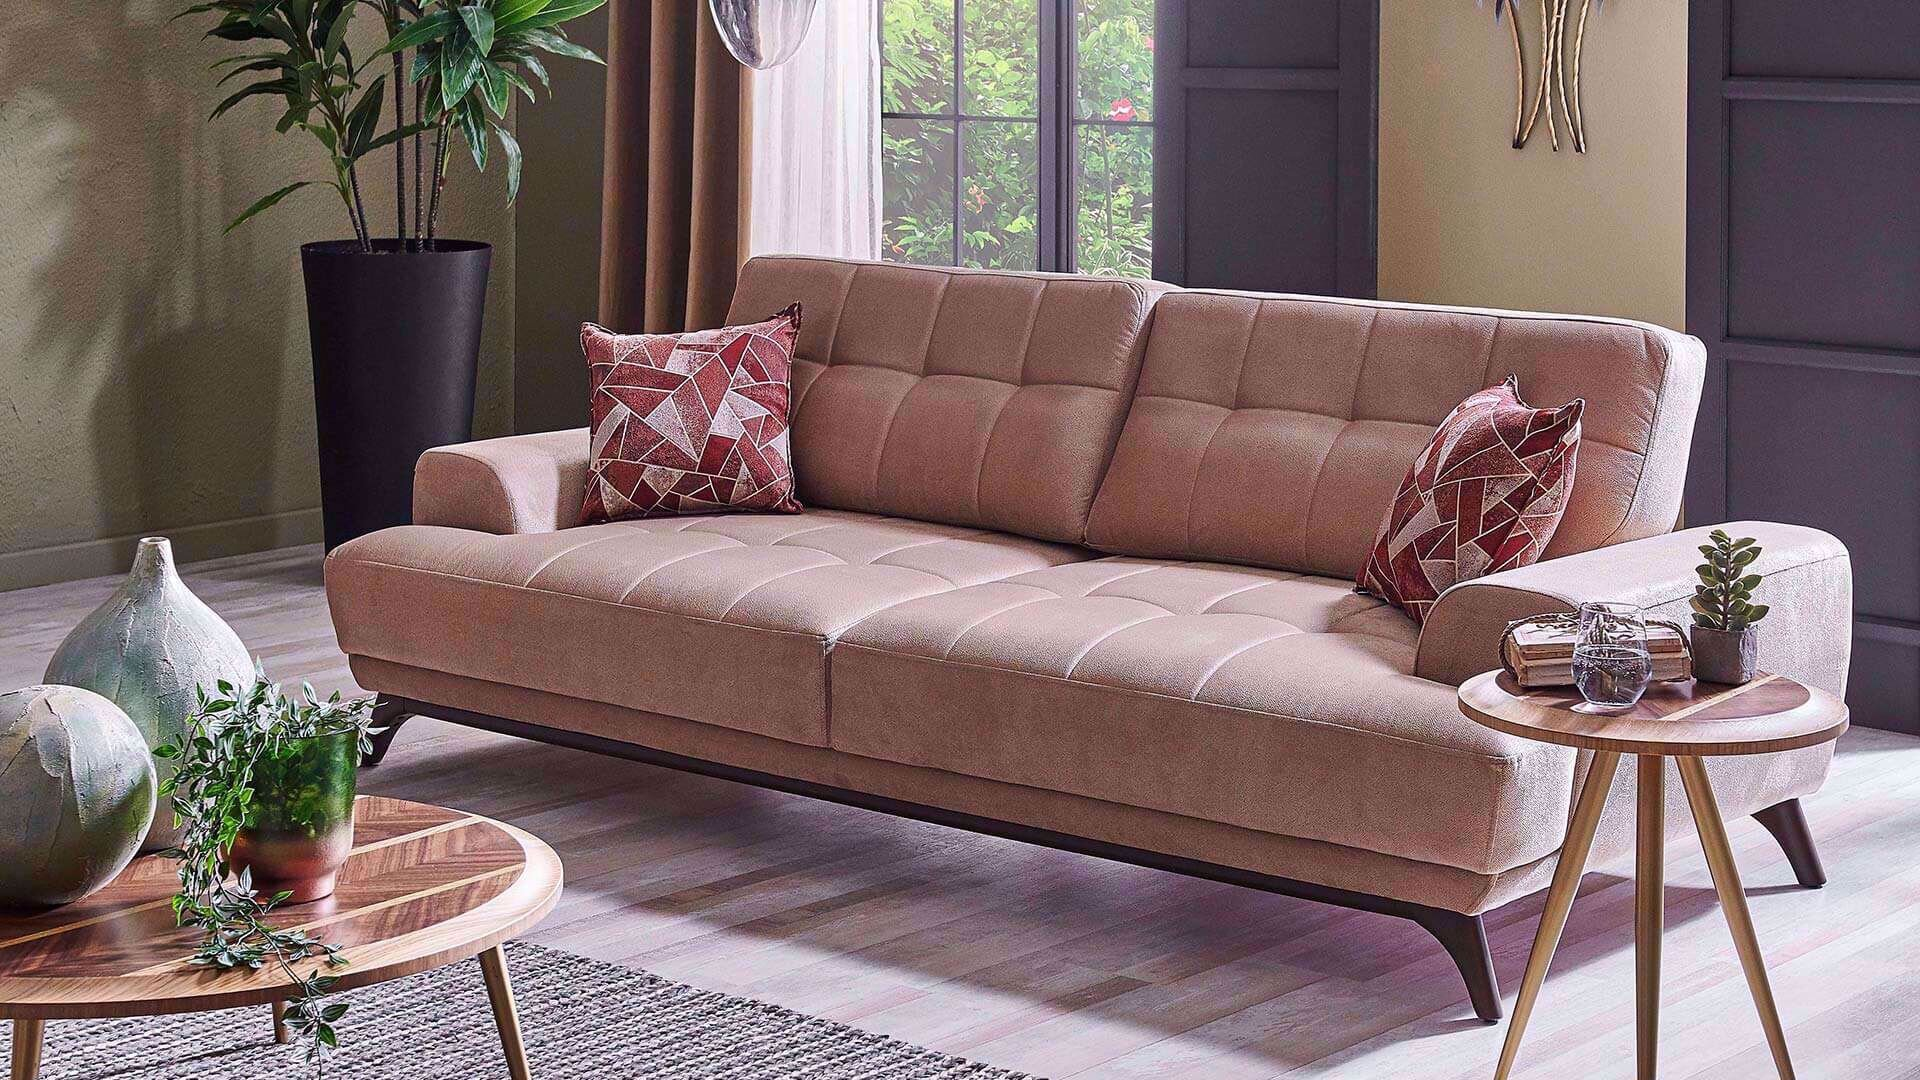 Martis Three-Seat Sofa (Doubles as Bed)